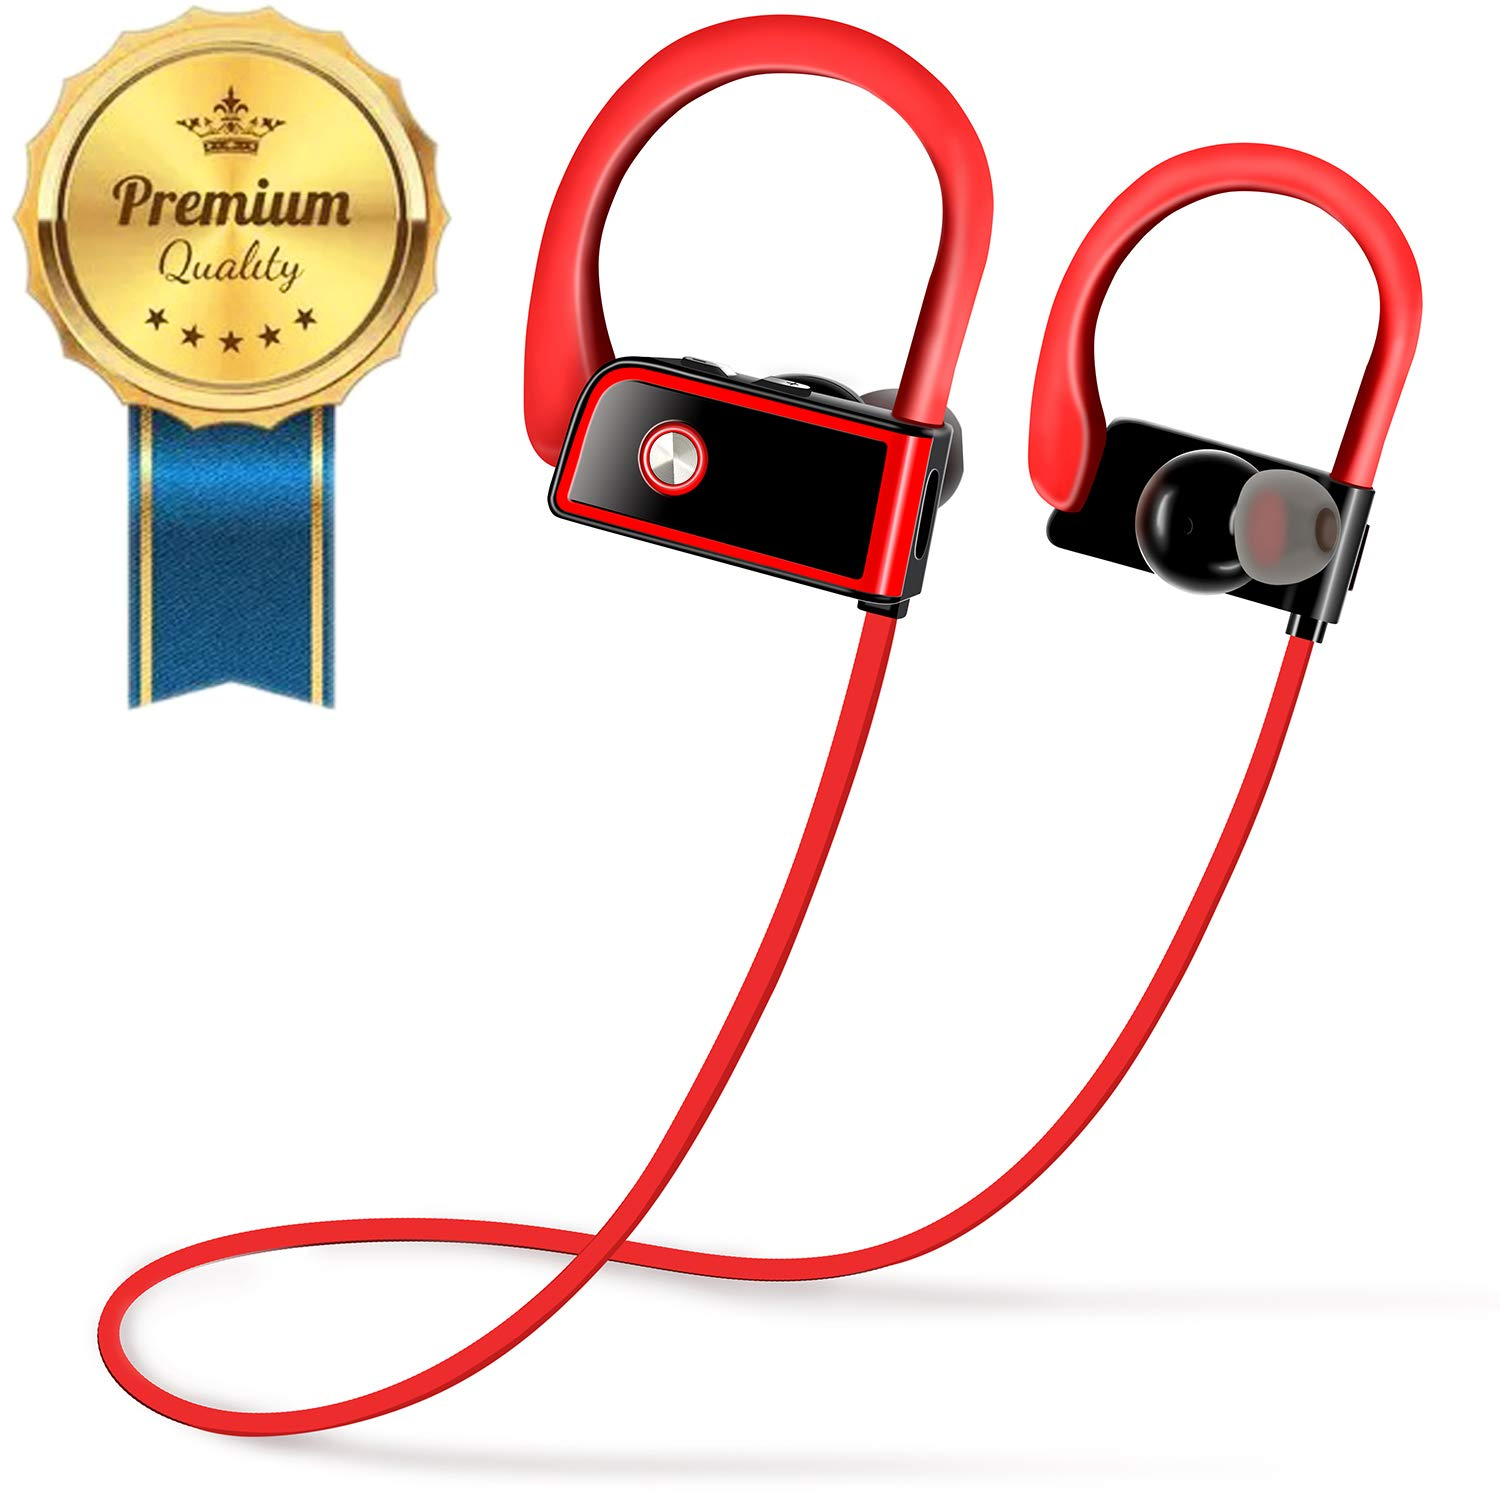 Deegotech Wireless Bluetooth Headphones, Waterproof Sports Earphones for Boxing Running, Bluetooth Earbuds for Gym Workout 8 Hour HD Stereo